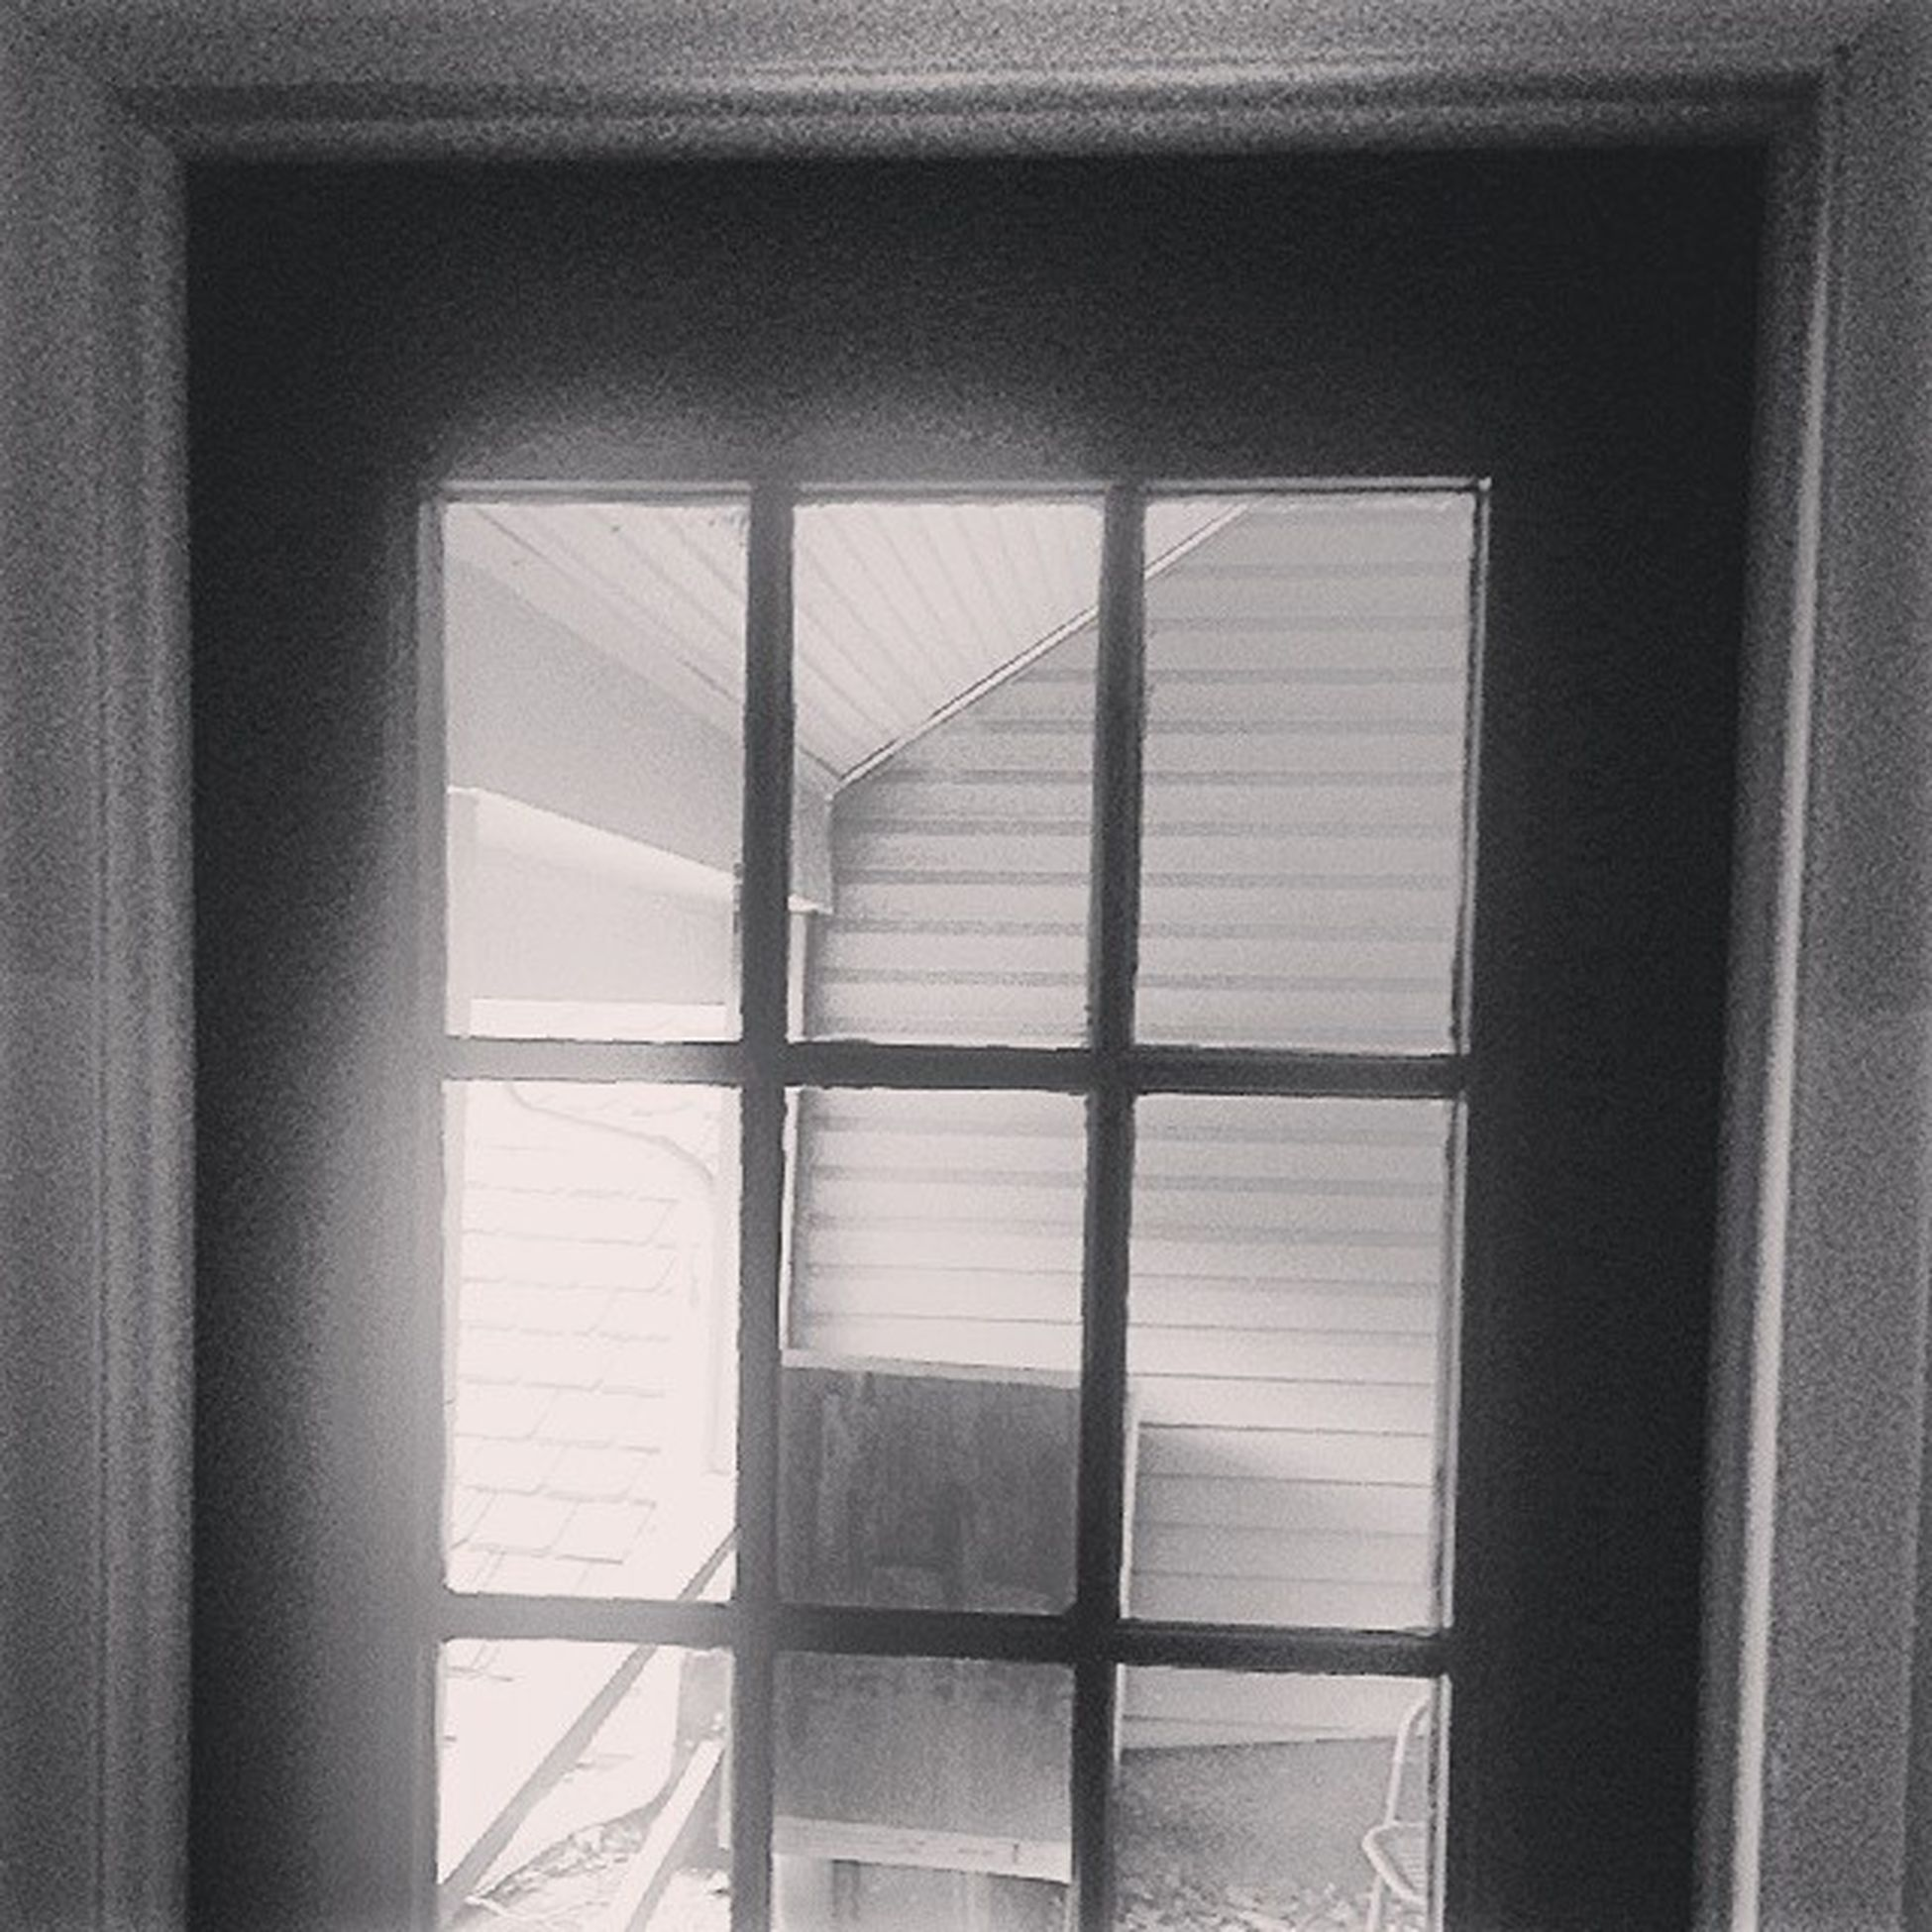 The door is everything. All that I've was and will be. The door can see into your mind! The door can see into your soul! Almostnotcrooked Blackandwhite Lamonthouse Check paneledglass happyvalley